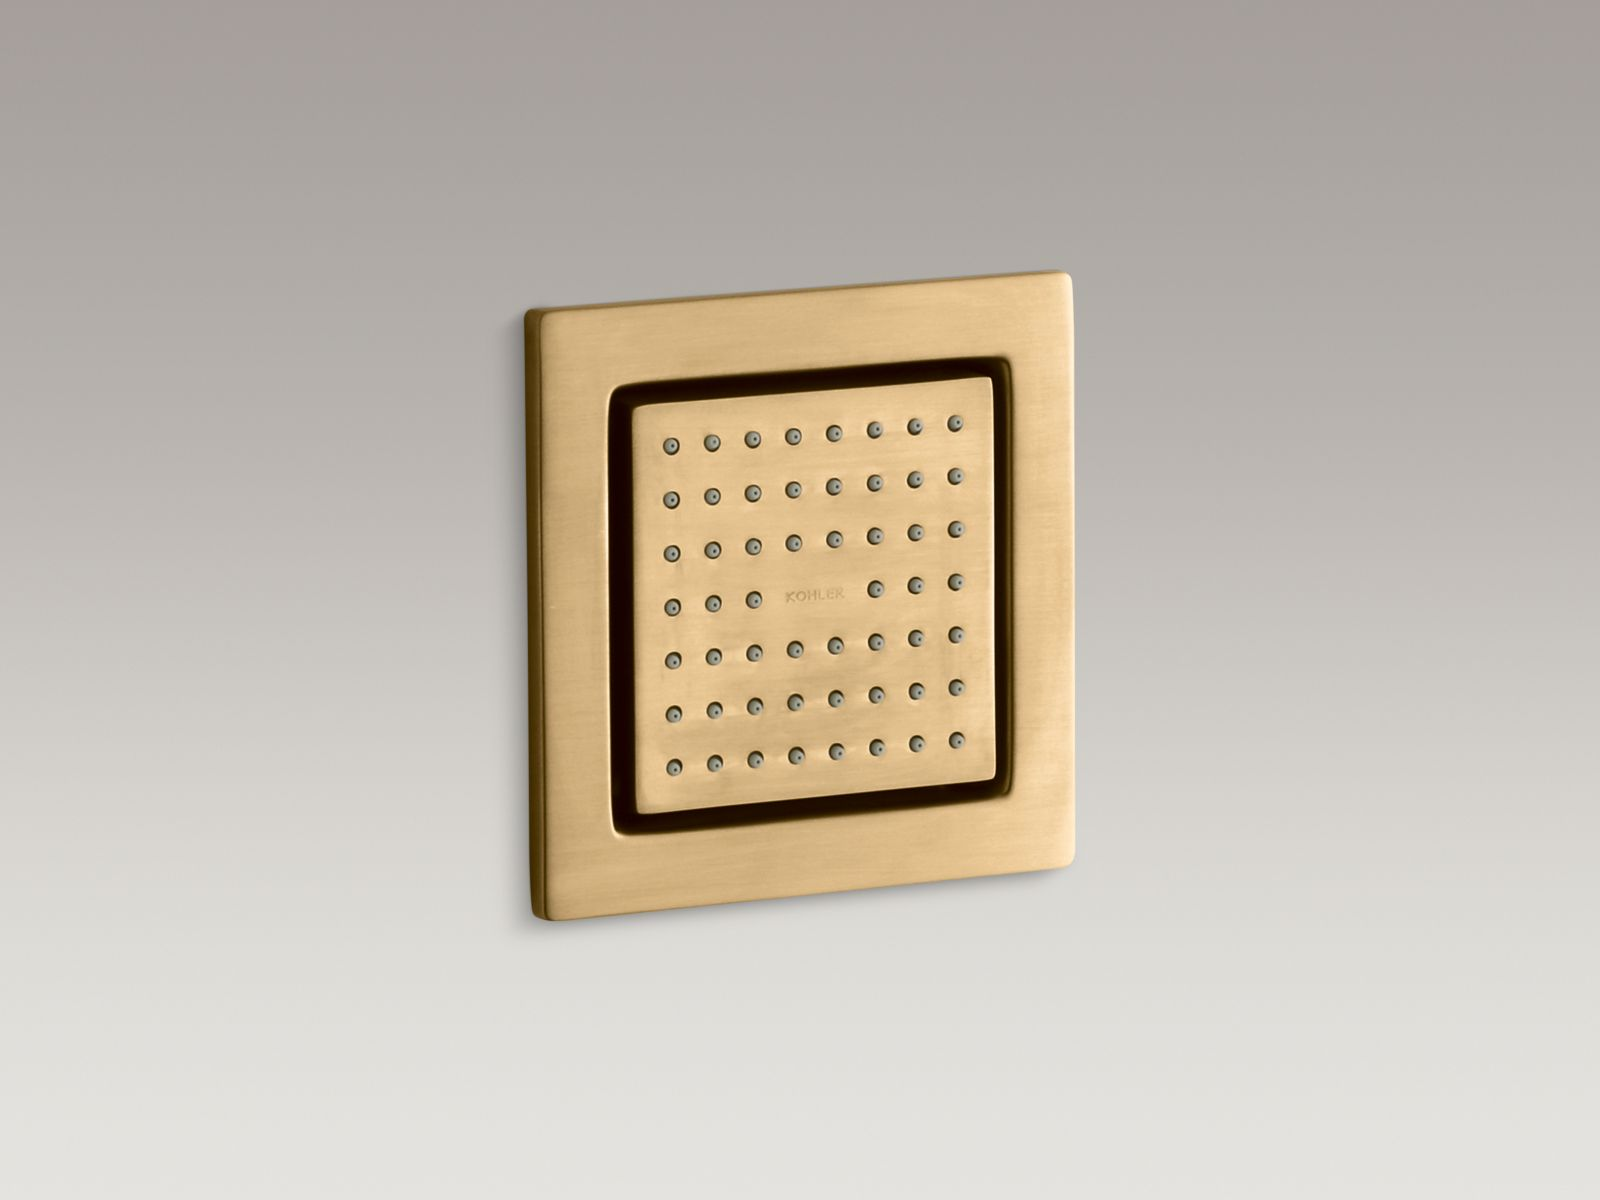 Kohler K-8002-BGD WaterTile Square 54-nozzle Bodyspray with Soothing Spray Moderne Brushed Gold